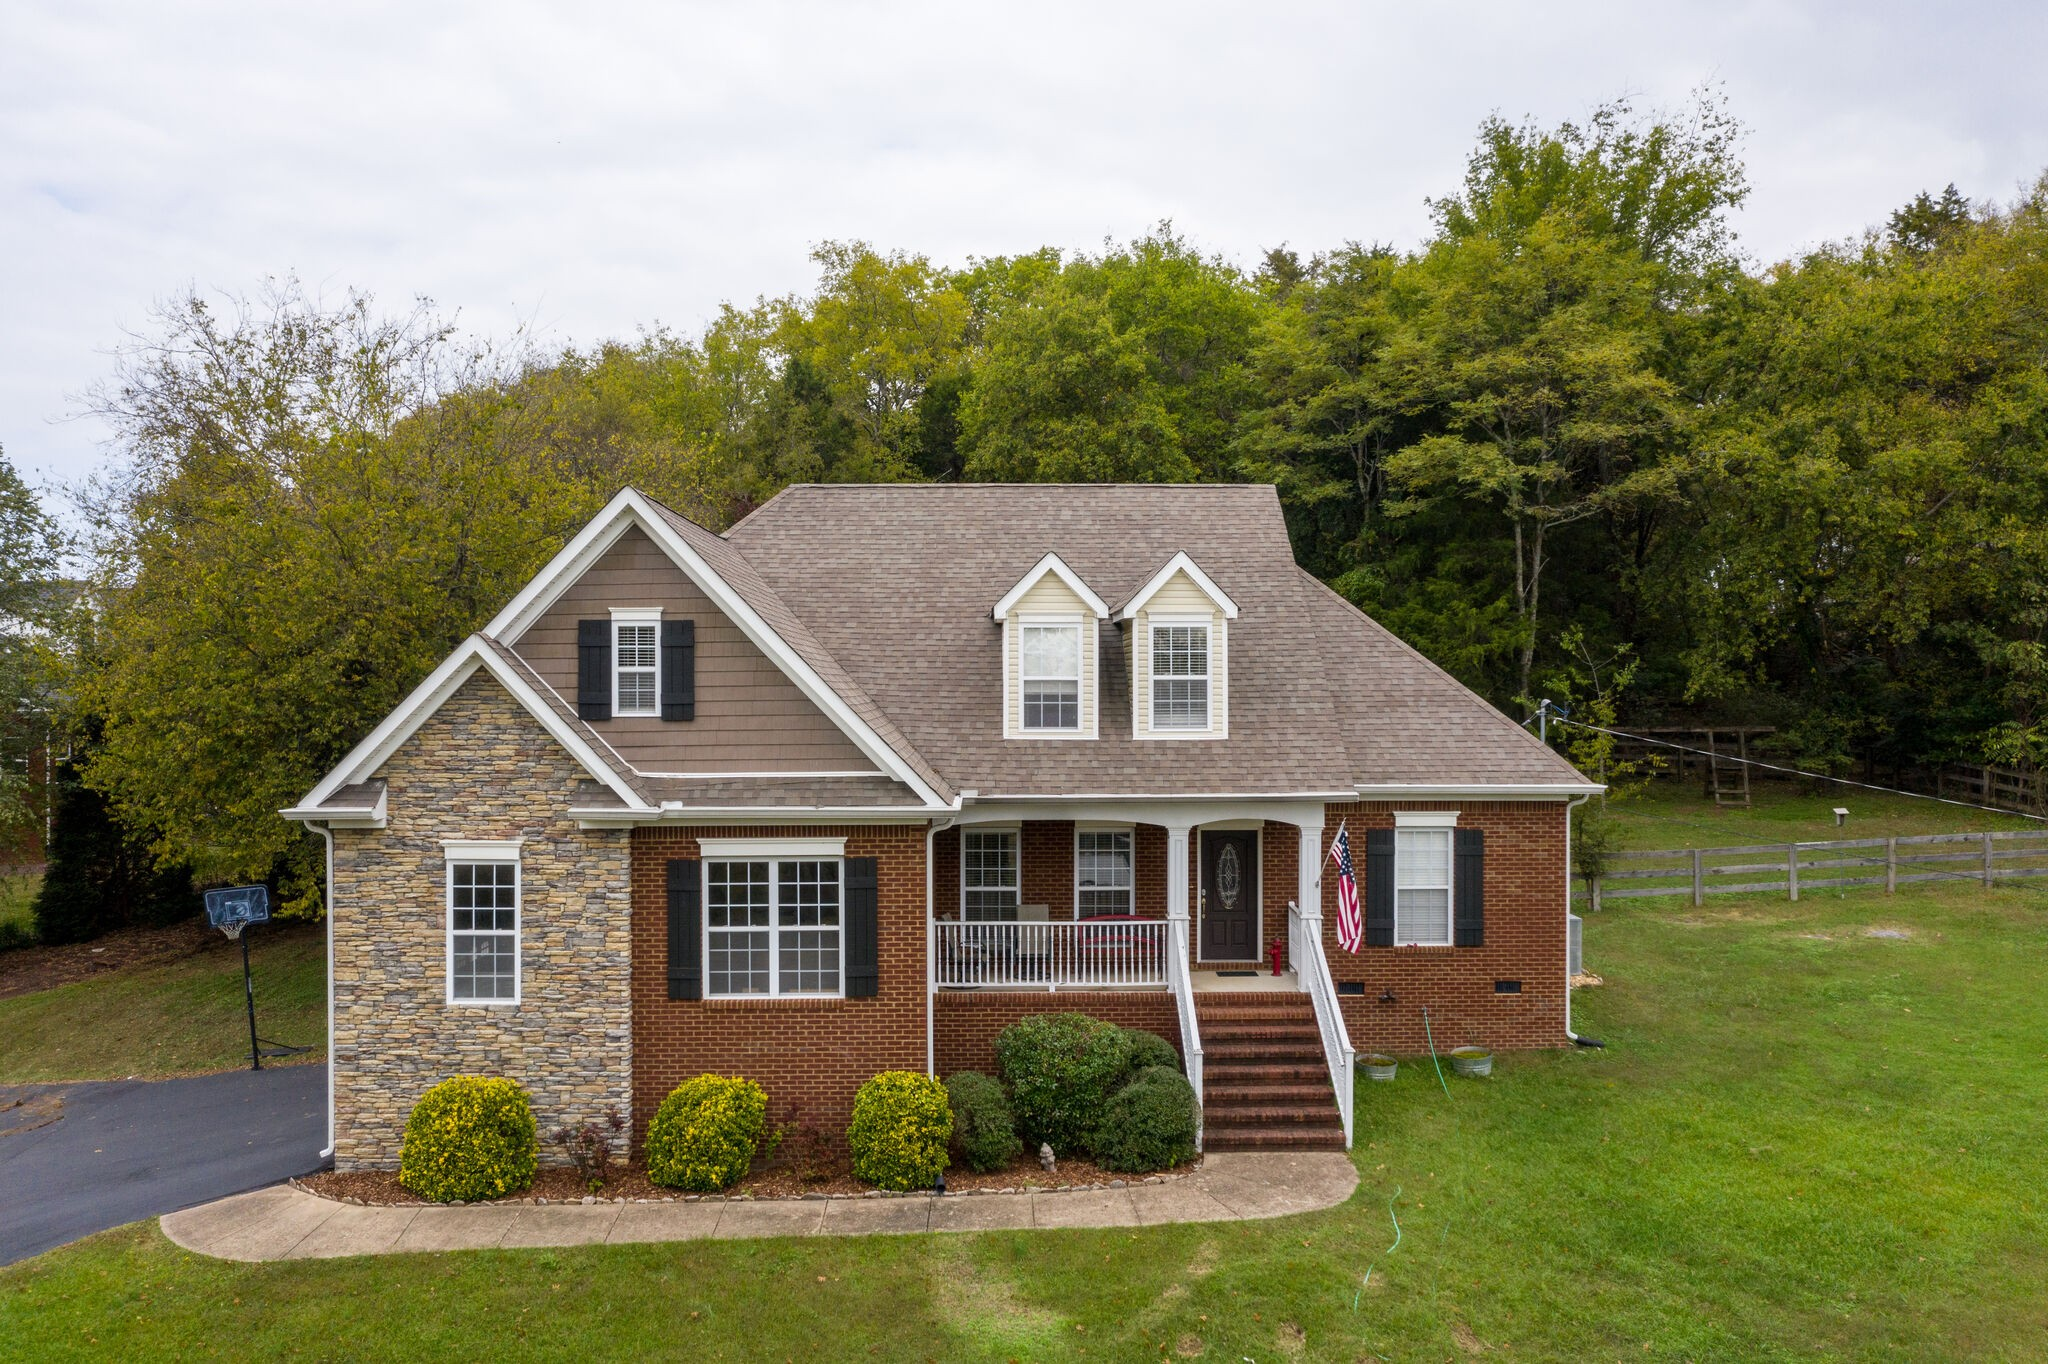 What an absolute wonderful home for you and your family. This 2749 Sq ff 4 bd 3 ba home sits nestled on a slightly sloped lot with a beautiful view. The back yard is private and quiet.  The lot is 1.07 acres and is great for kids and dogs to run on. New Carpet thru out the home and ready for a new owner. This is minutes from I-65 for the N/S commuter and shopping in Cool Springs and Spring hill area. This home can be yours before Christmas. Call today and lets get you a personal showing